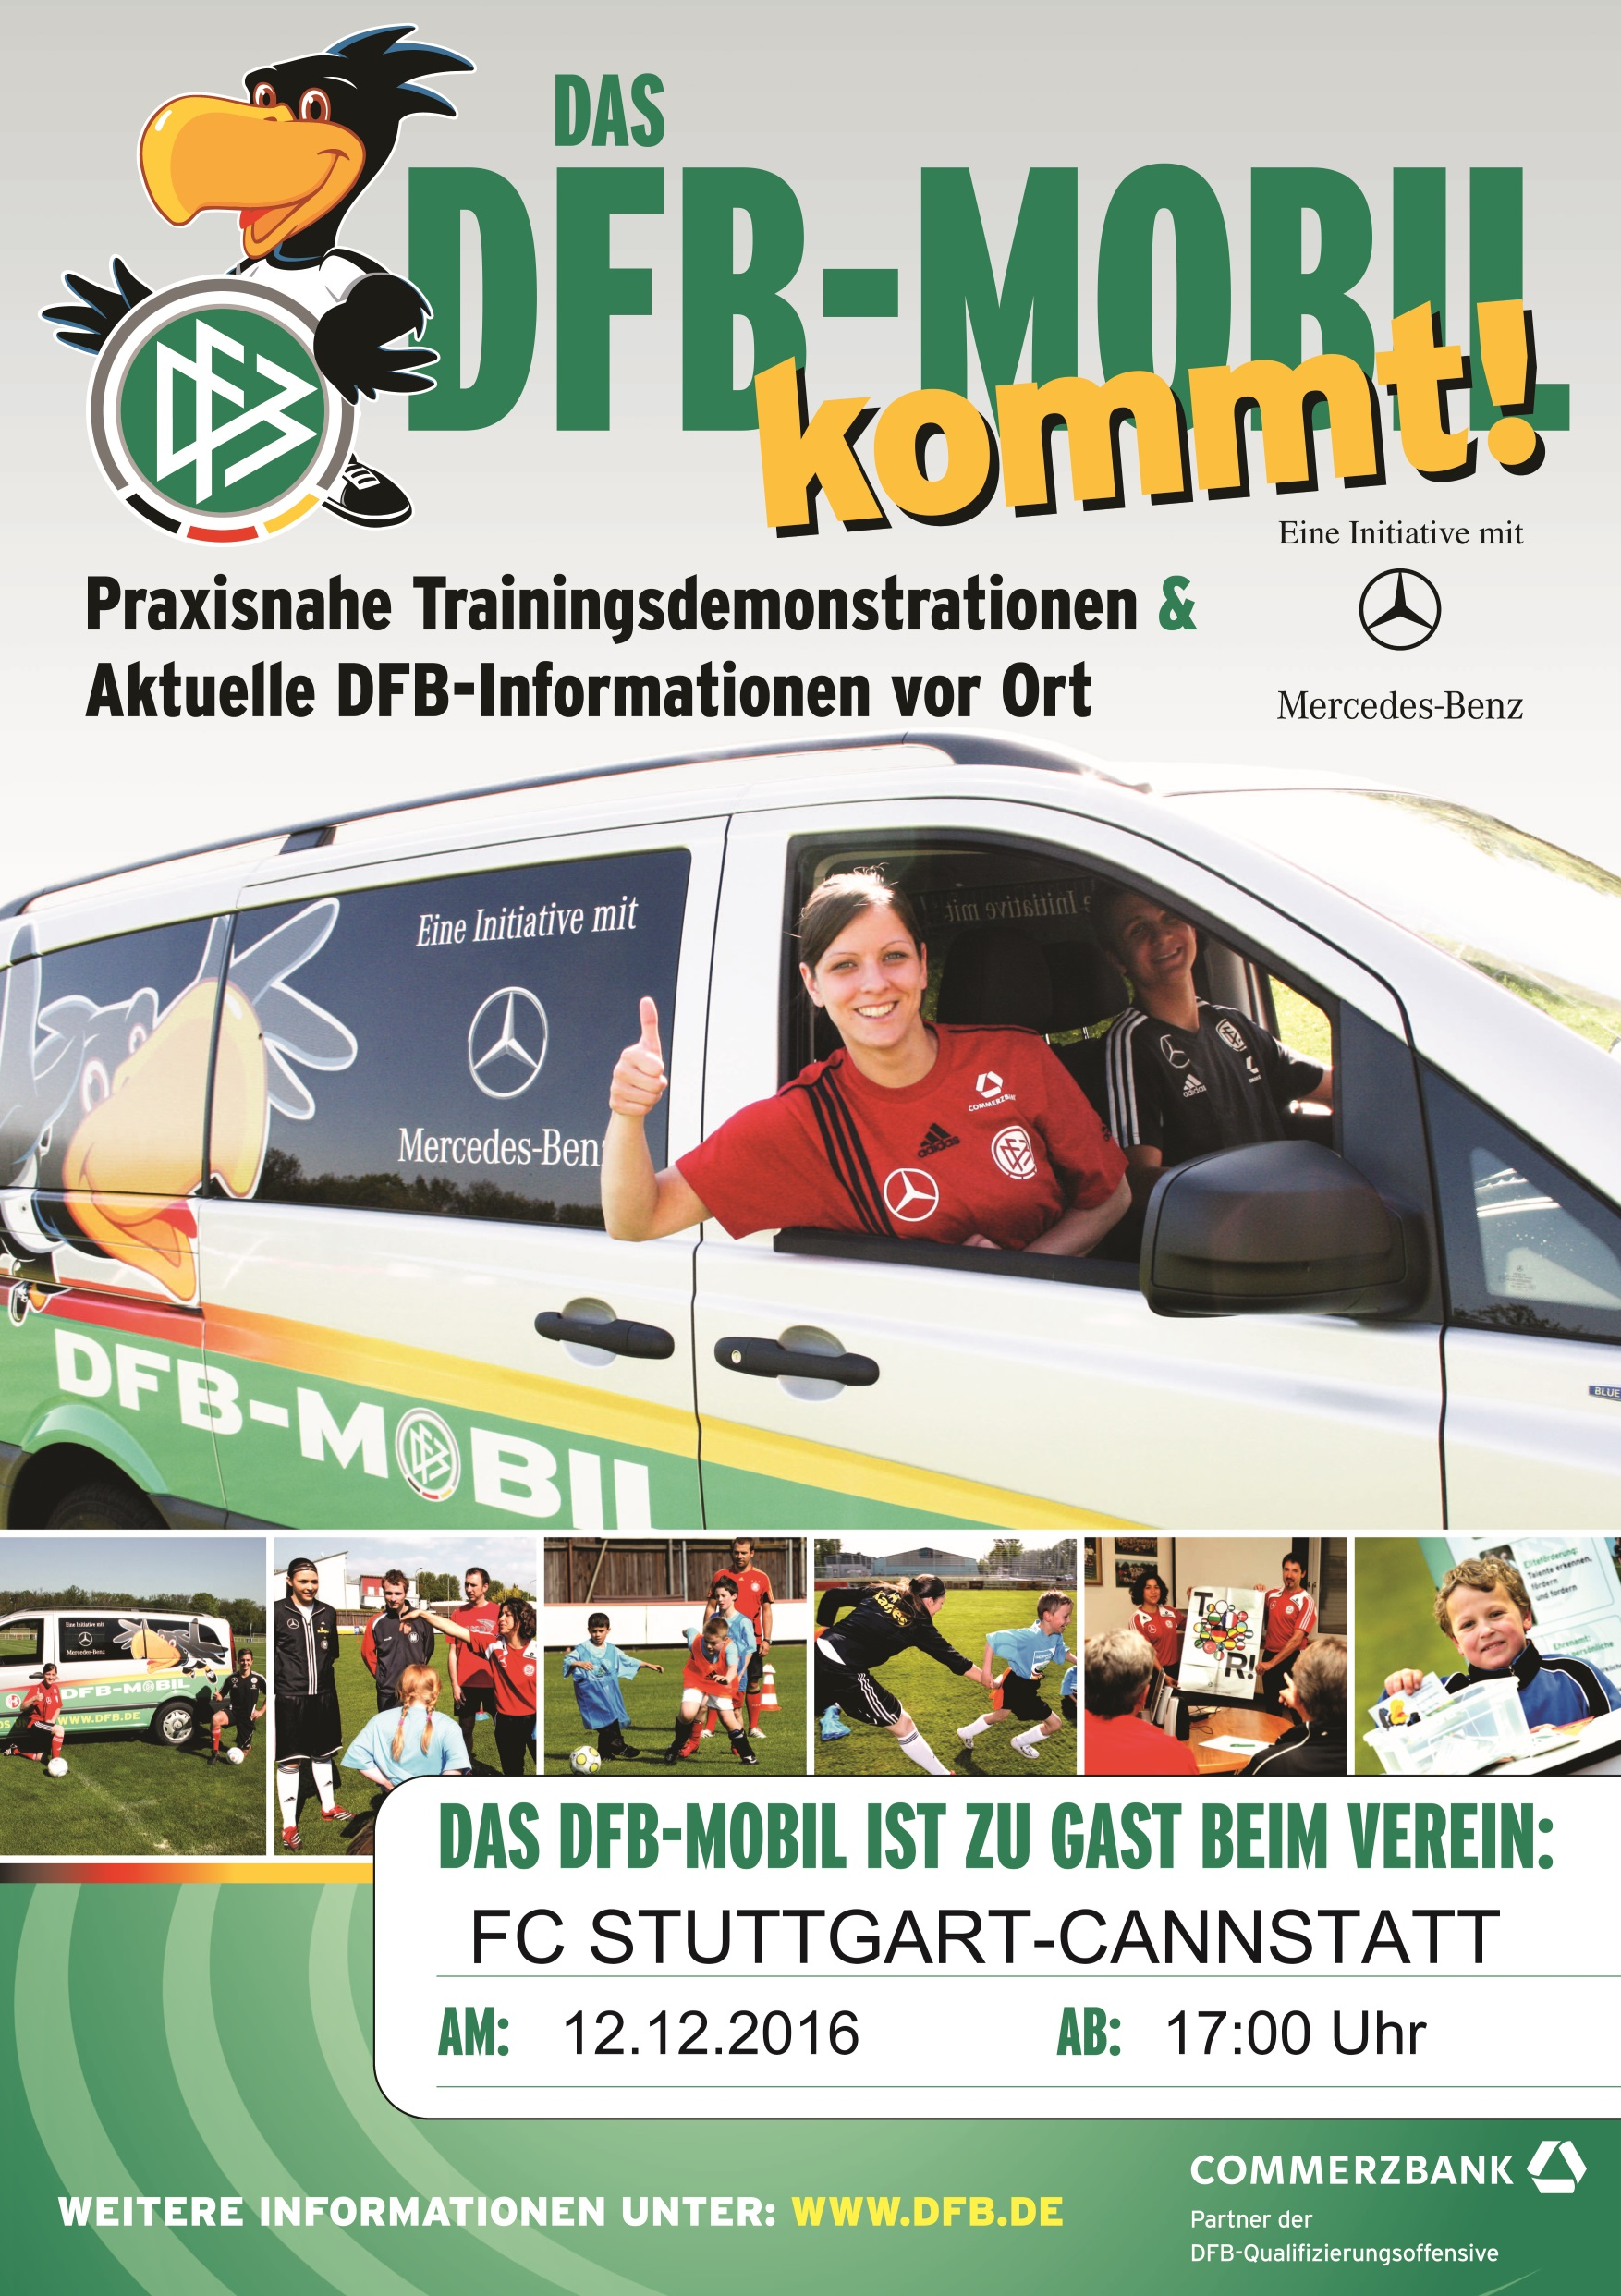 dfb mobil poster fcs 12.12.2016 II klein